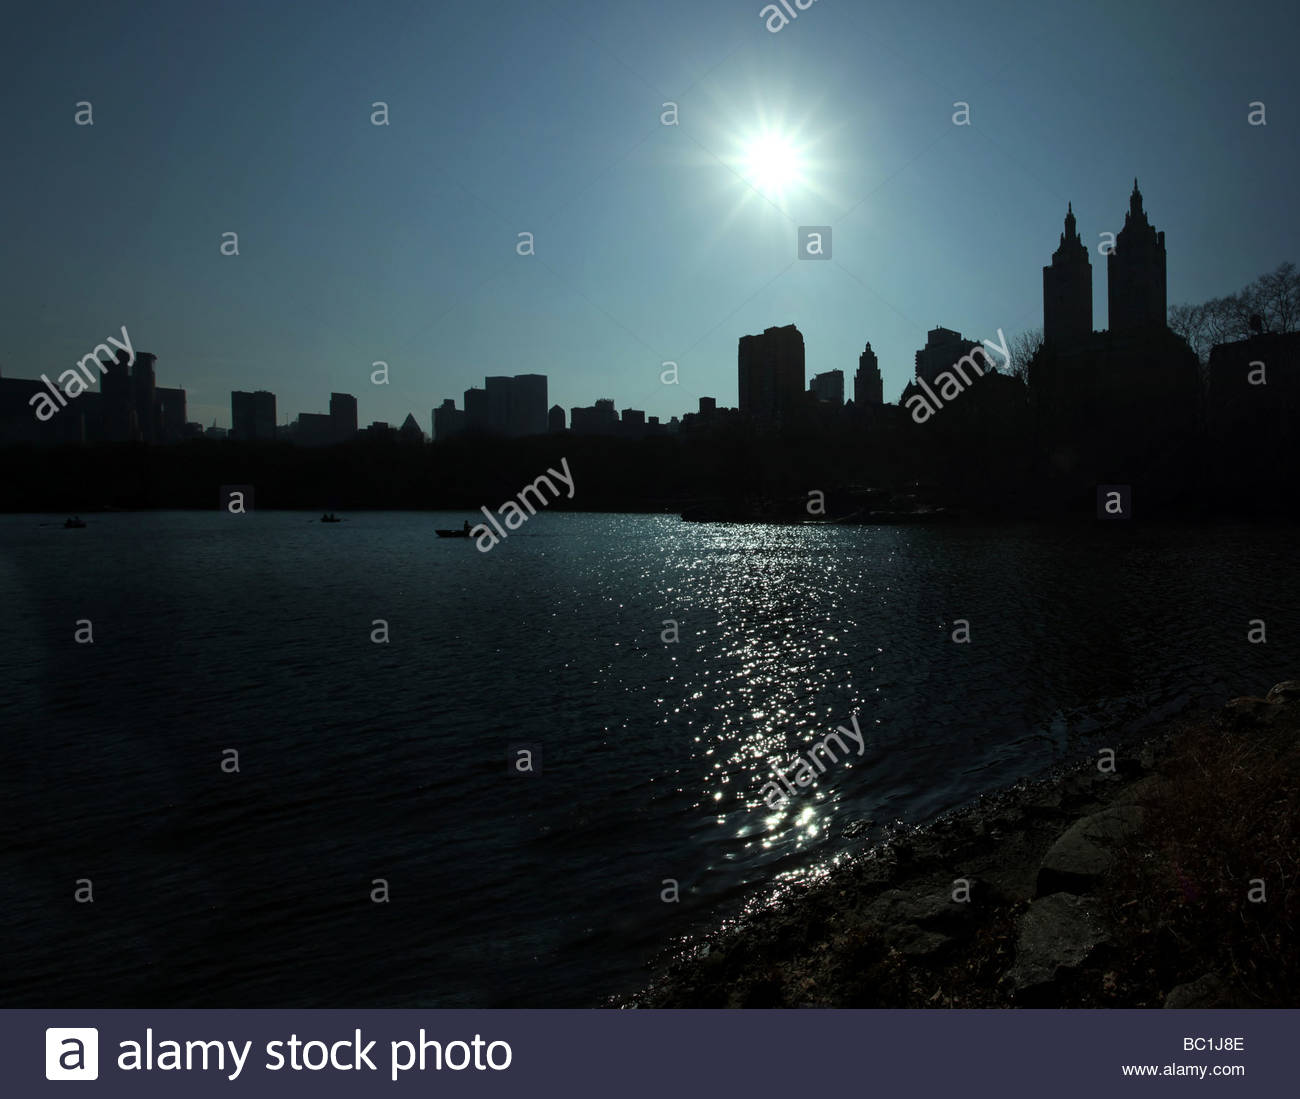 Panoramic view of the lake in central park - Stock Image